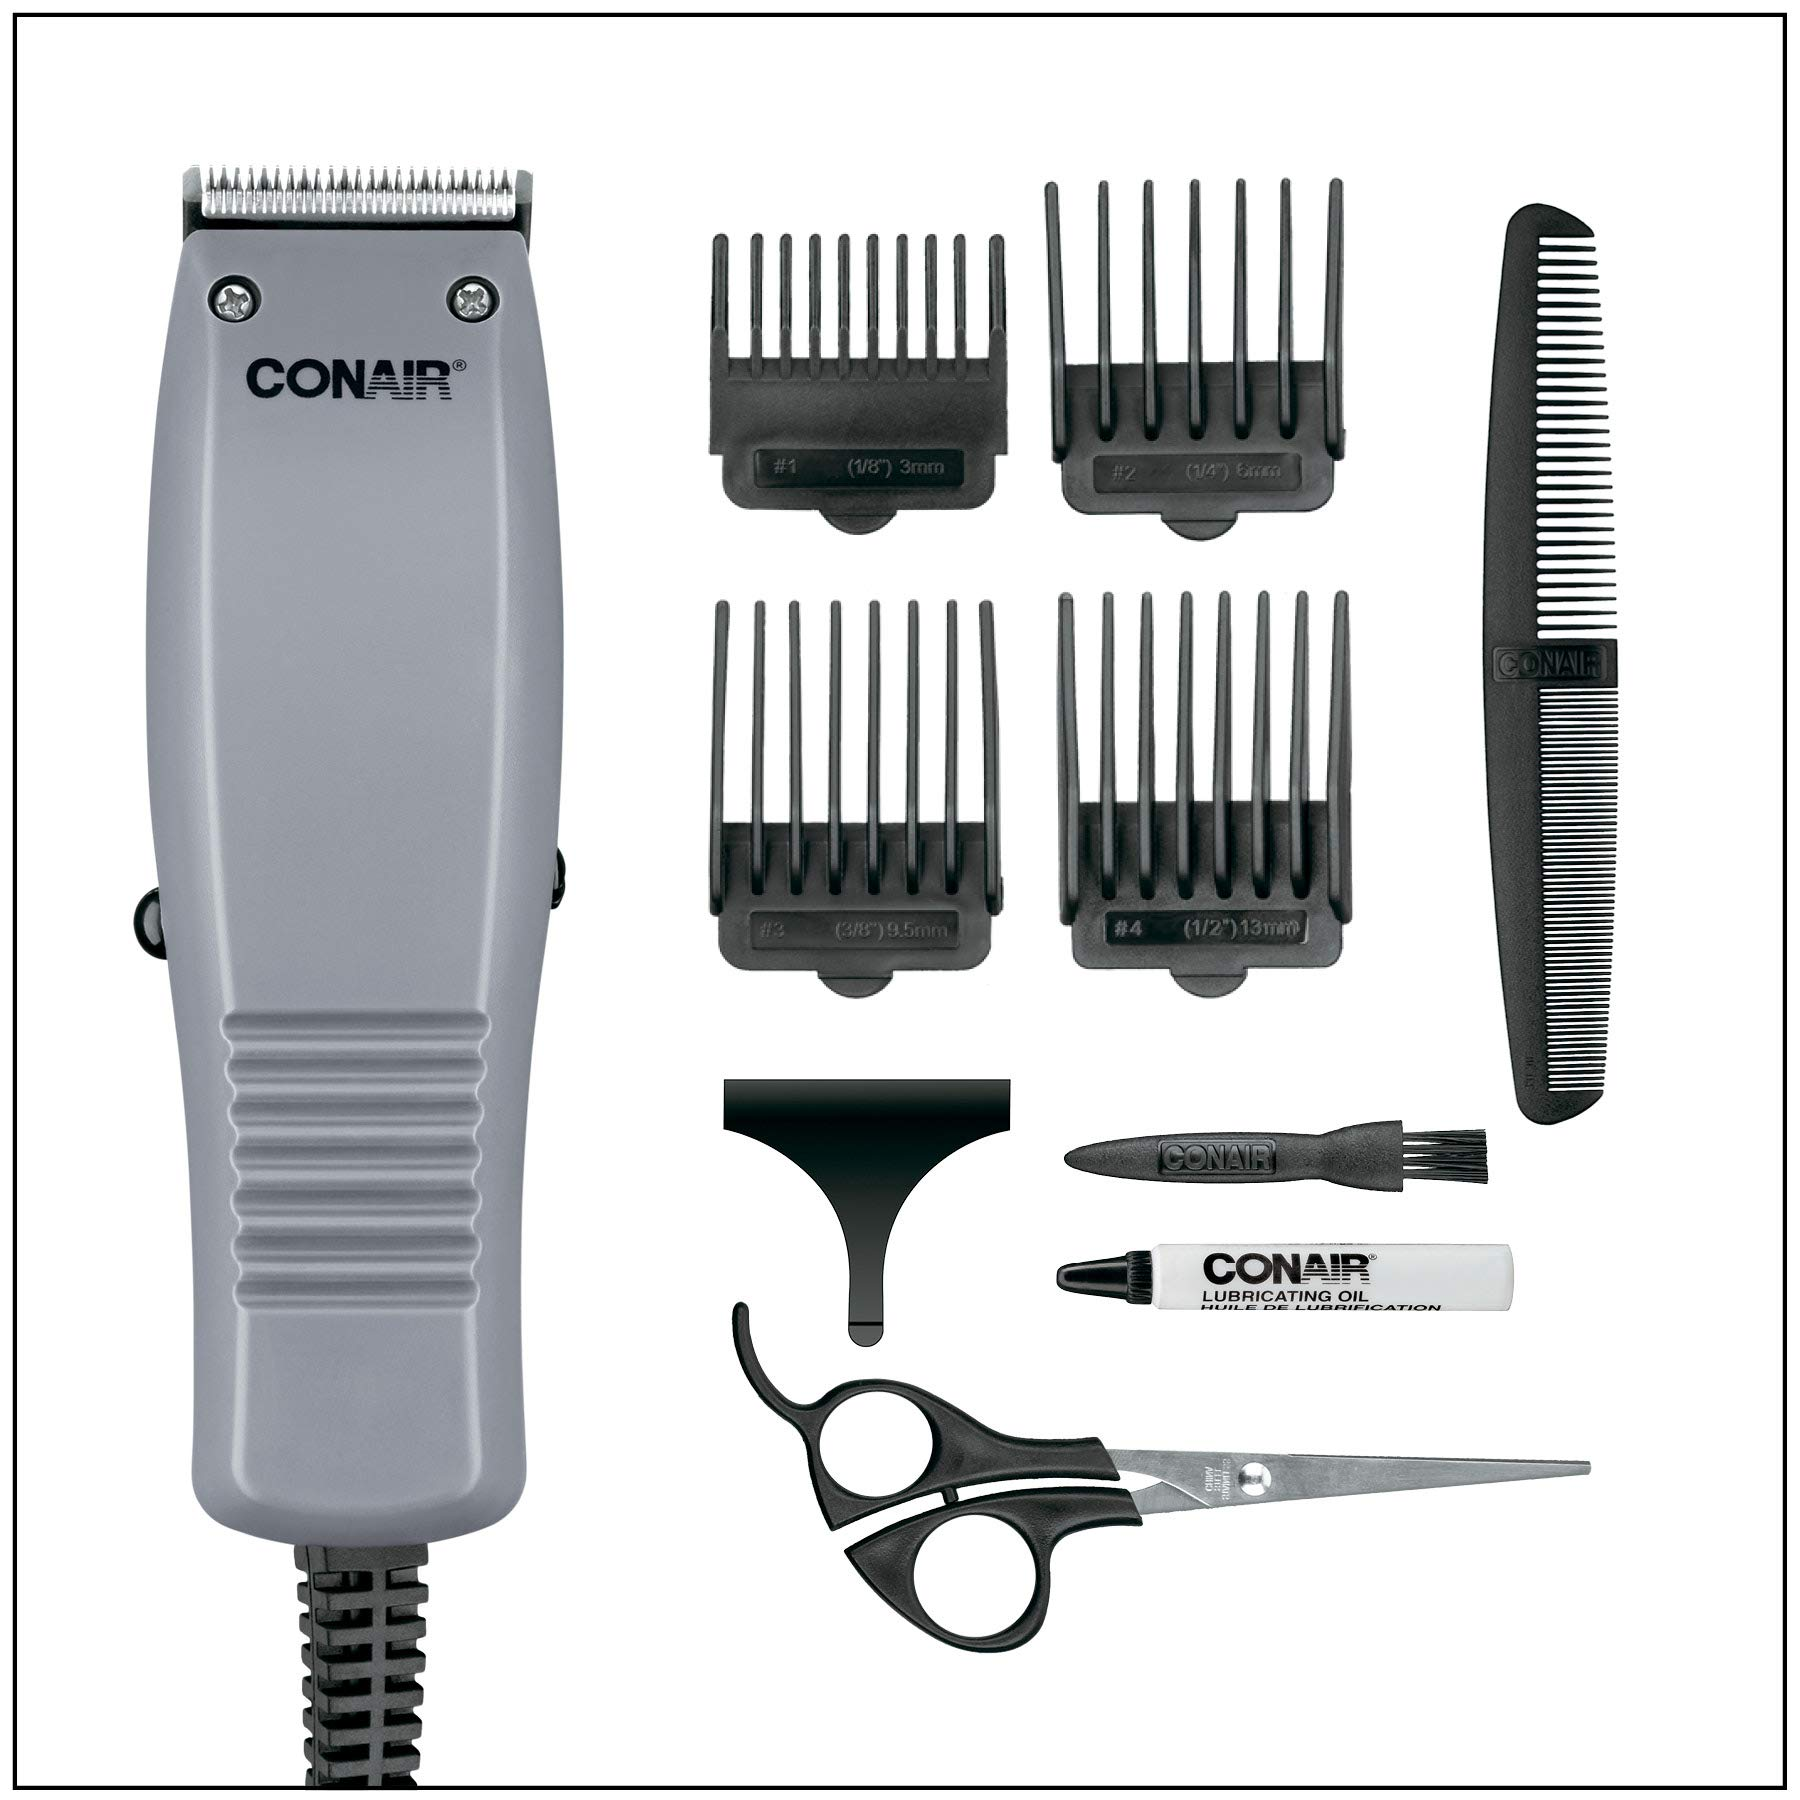 Conair Simple Cut 12-piece Home Haircut Kit - Buy Online in El